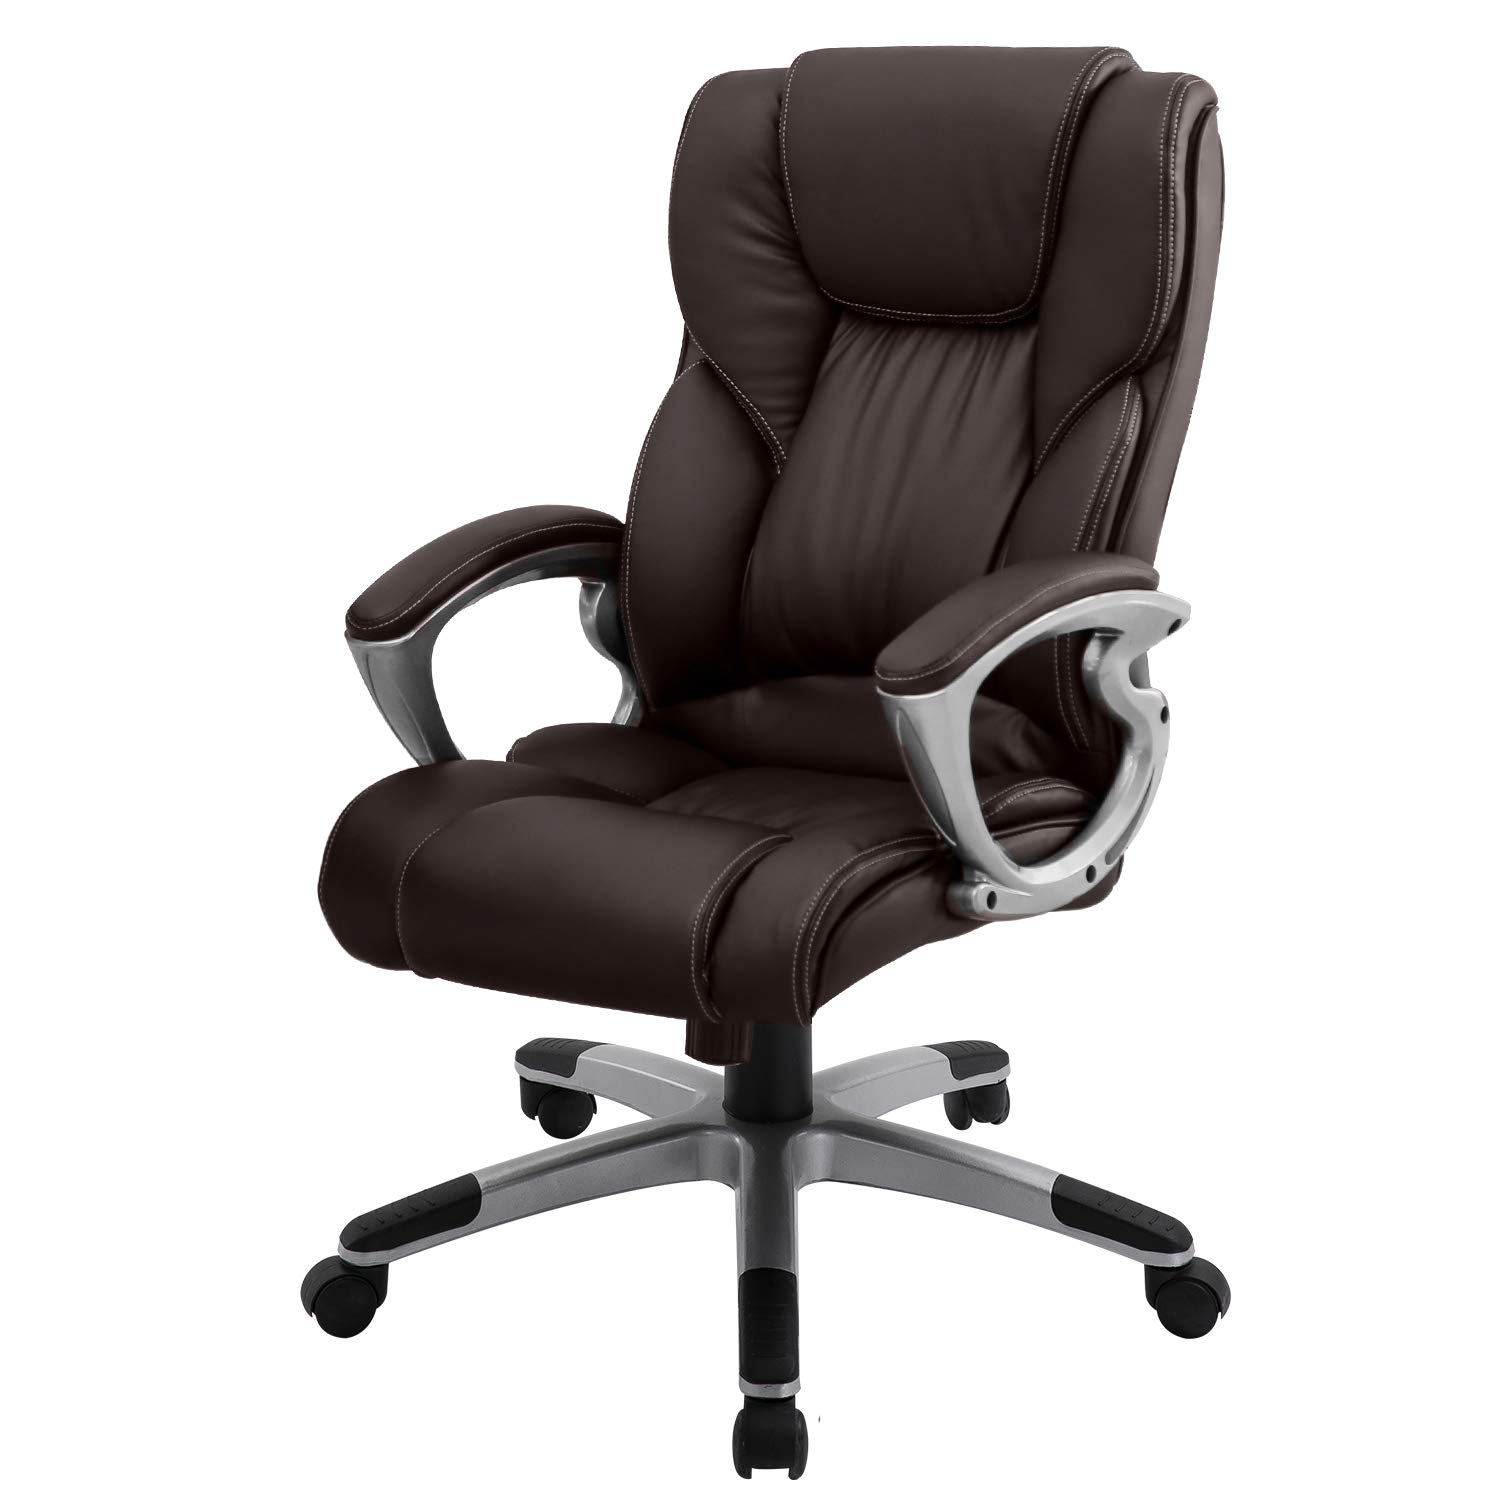 B2C2B High Back Home Office Chair Leather Computer Desk Chair Modern Ergonomic Adjustable Seat and Back Support with Comfortable Lumbar Support for Man Women